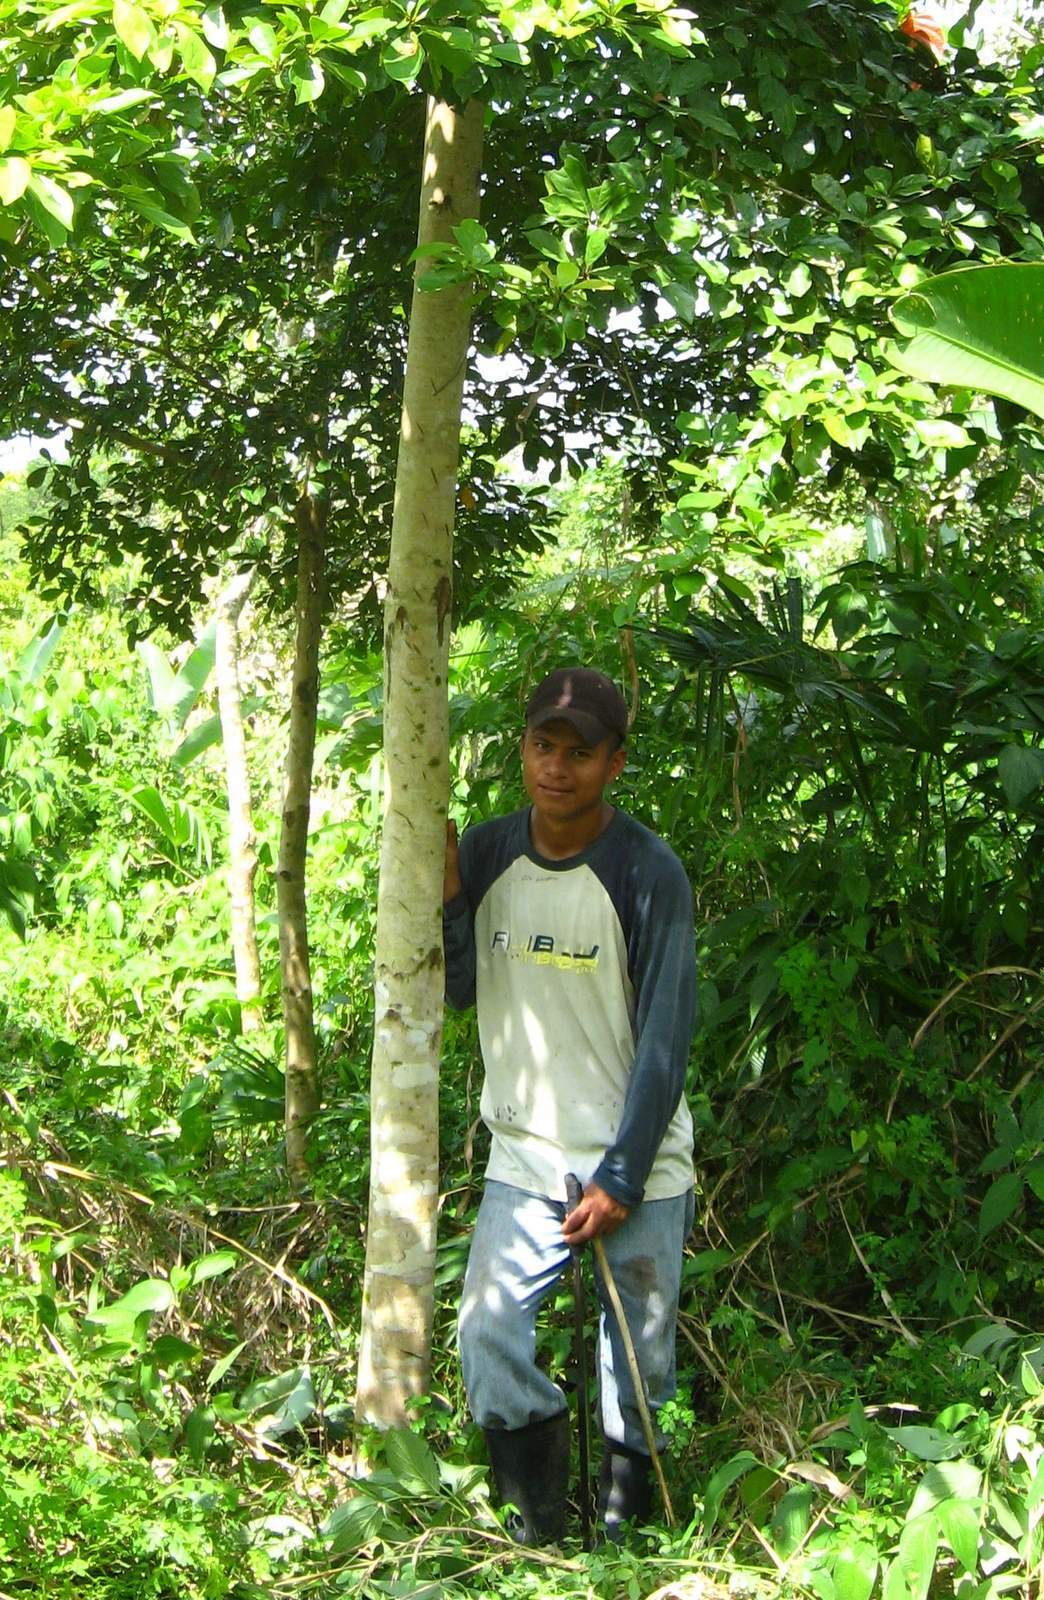 We let the understory regenerate between rows of trees to increase biodiversity and reduce the need for pesticides.